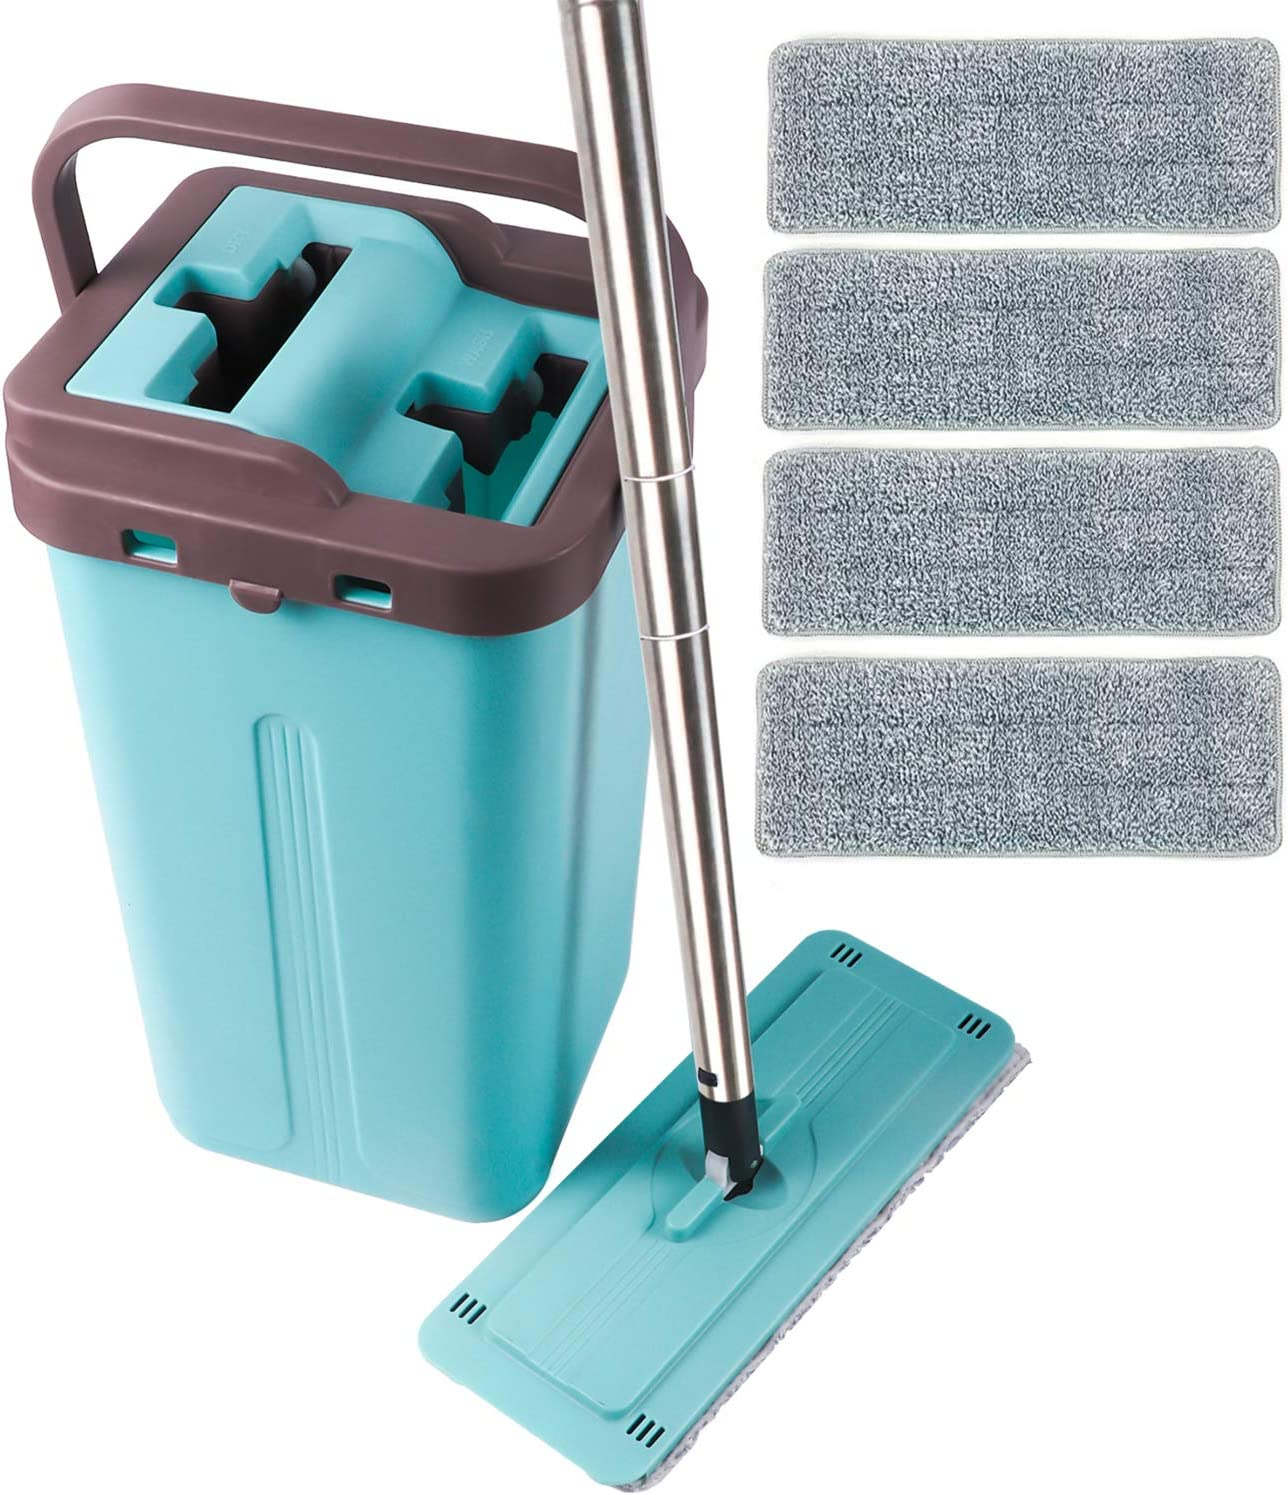 LETTON Microfiber Squeeze Mop and Bucket System for Home Bathroom Windows Floor Cleaning with 4 Washable Flat Microfiber Mop Pads